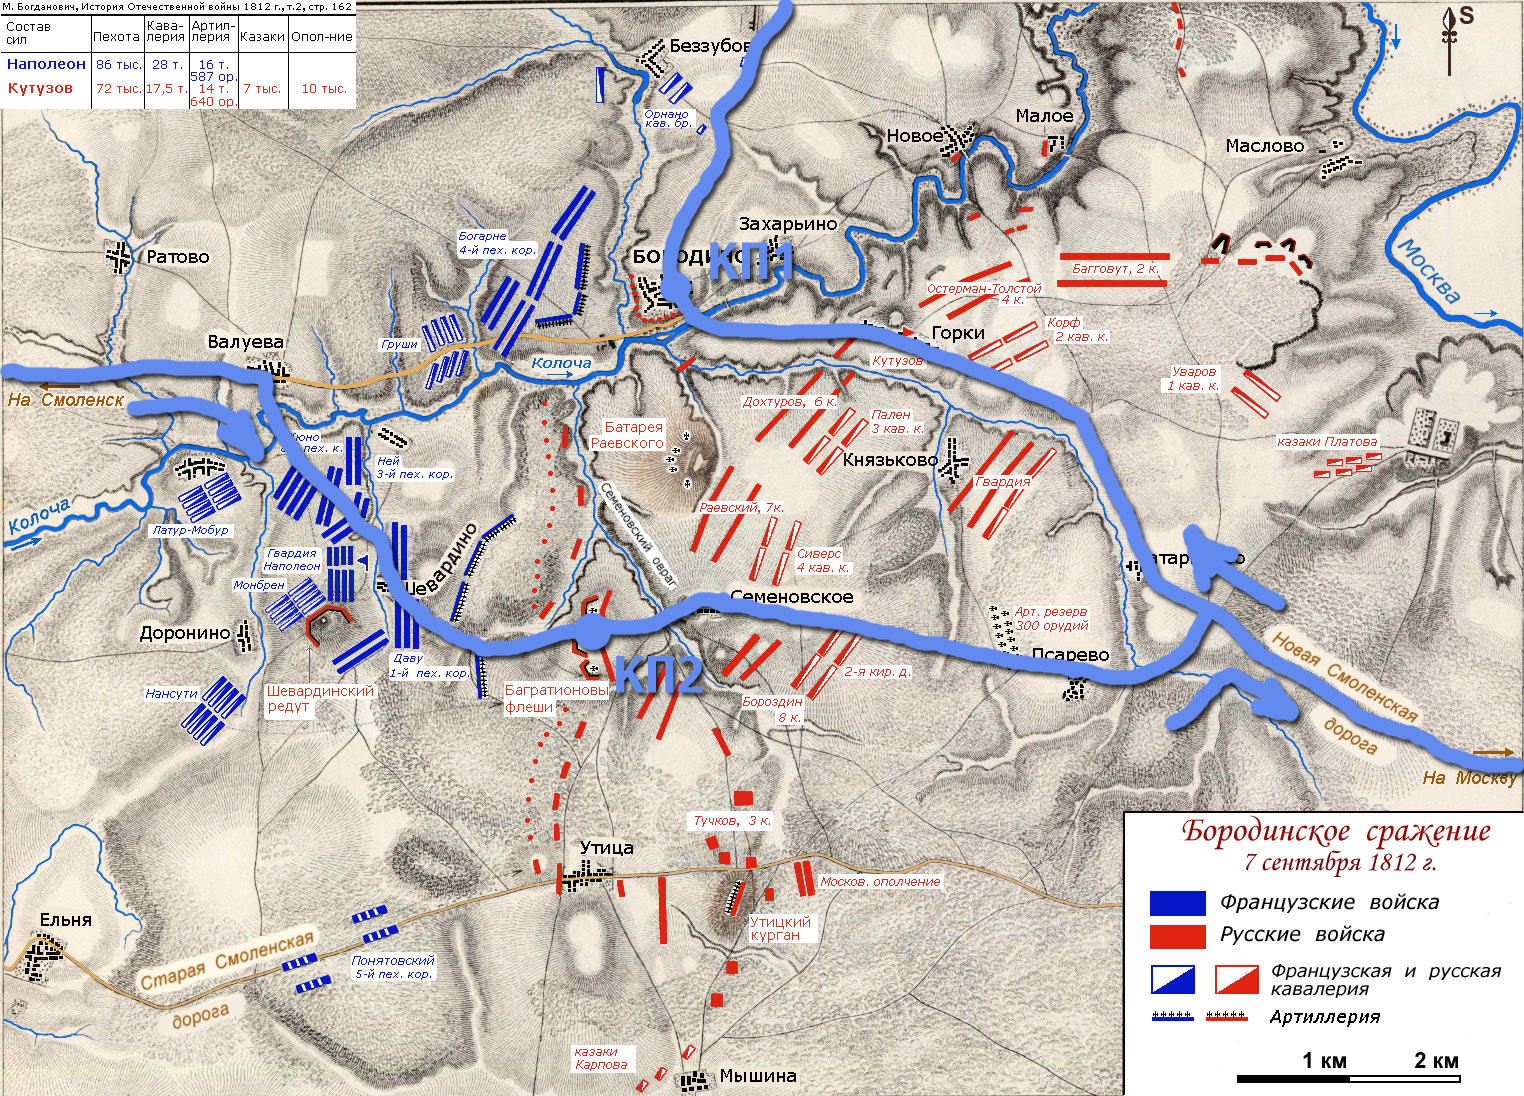 Mozhaisky Brevet 200 km. The imposition of track to map of Borodino battle